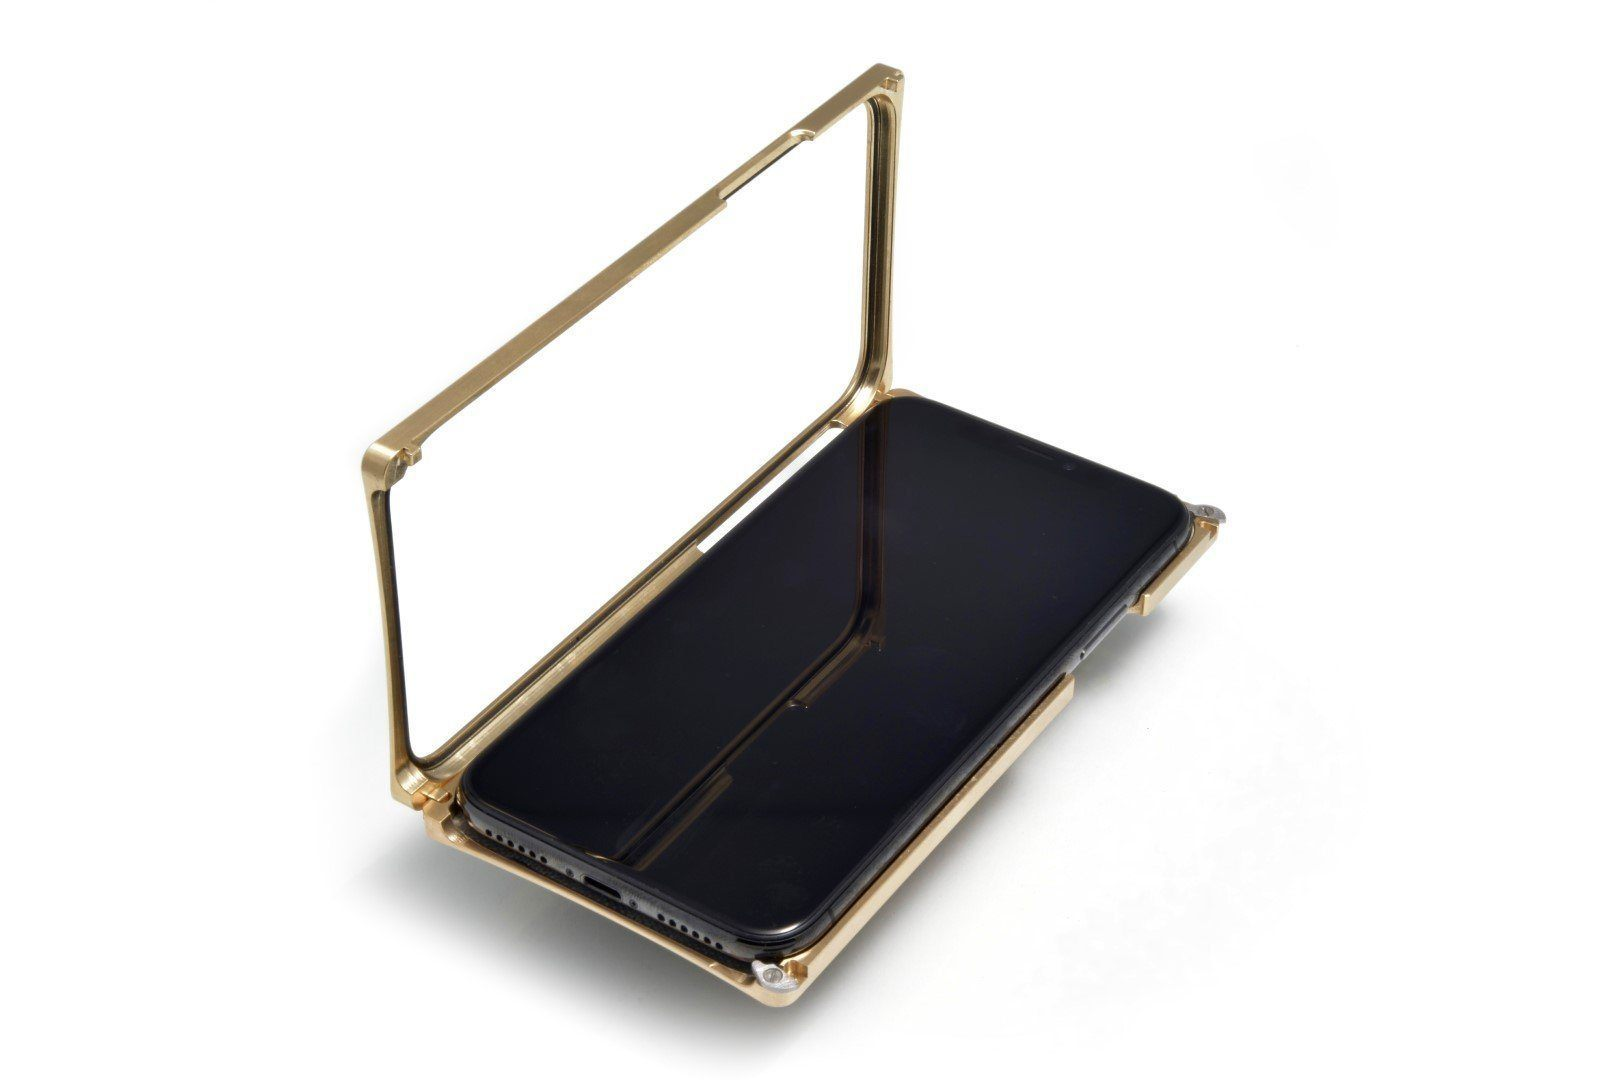 Cage Brass for iPhone X for special orders